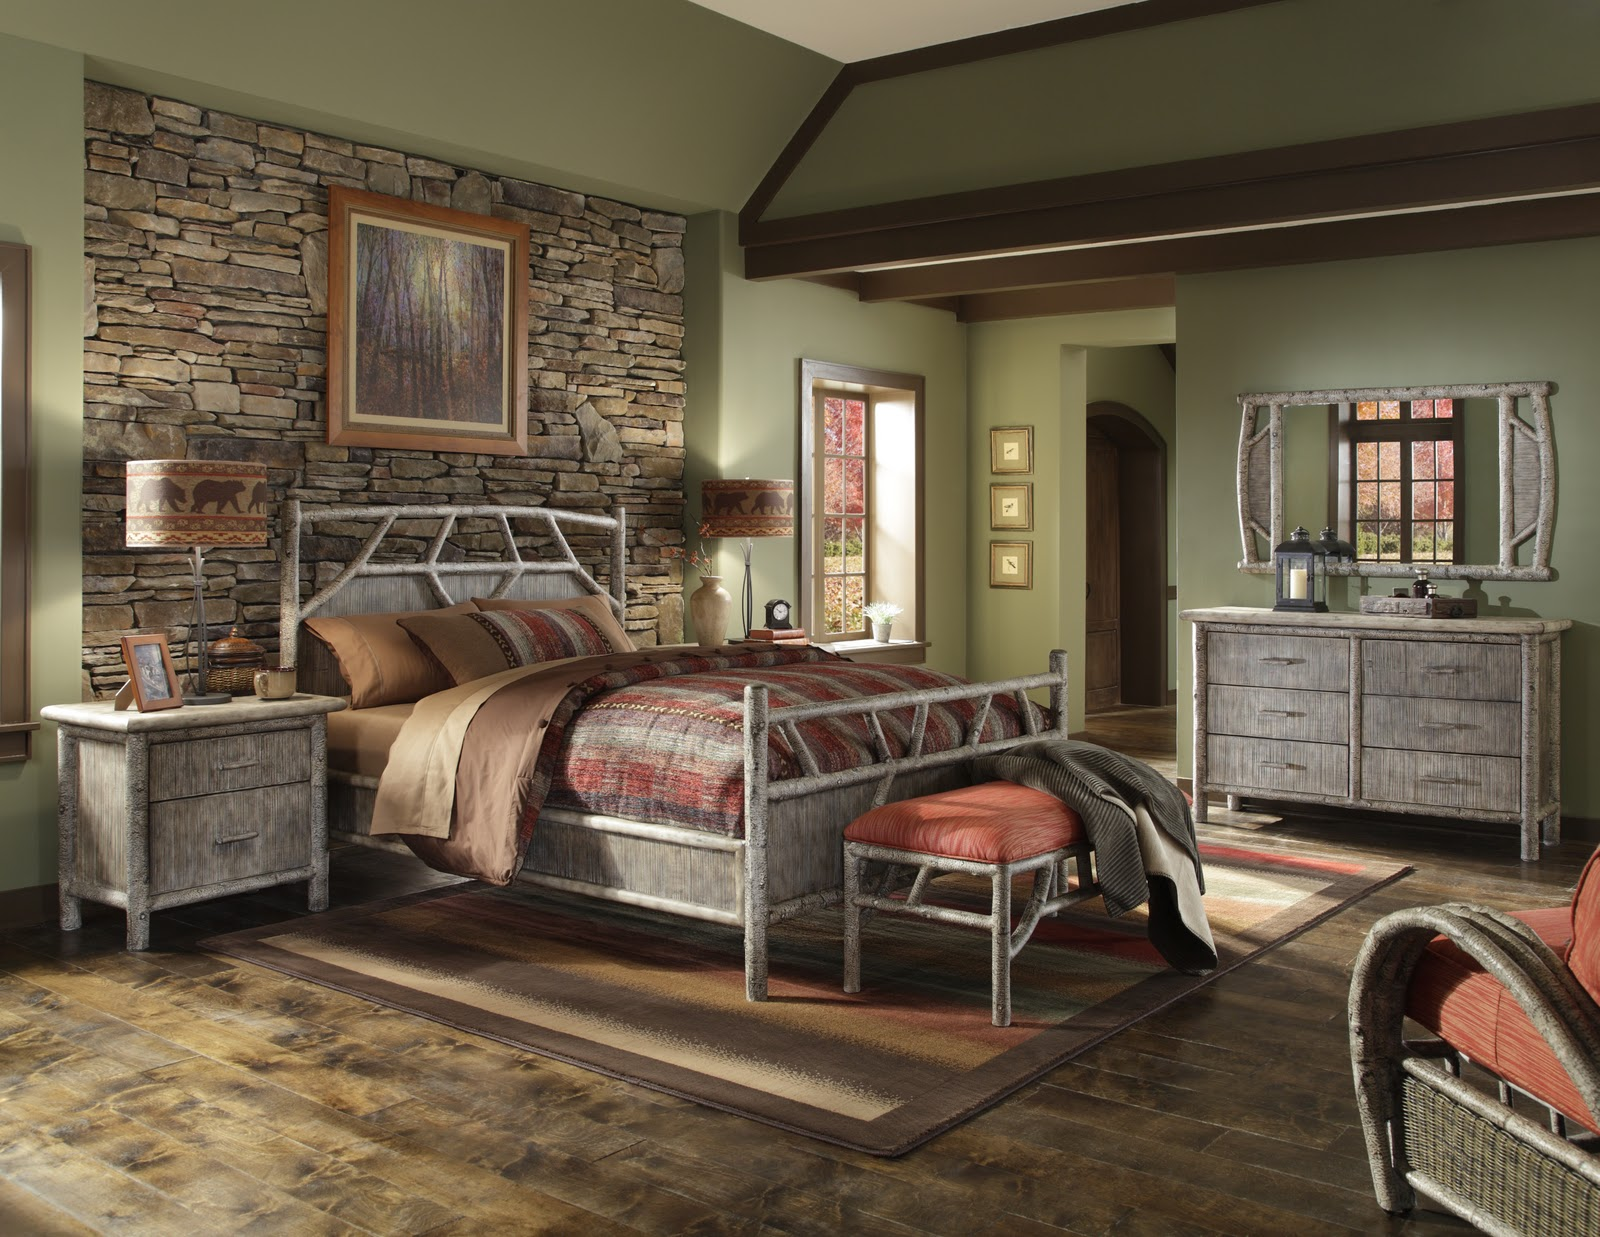 Gift & Home Today: 5 New Bedding Ensembles